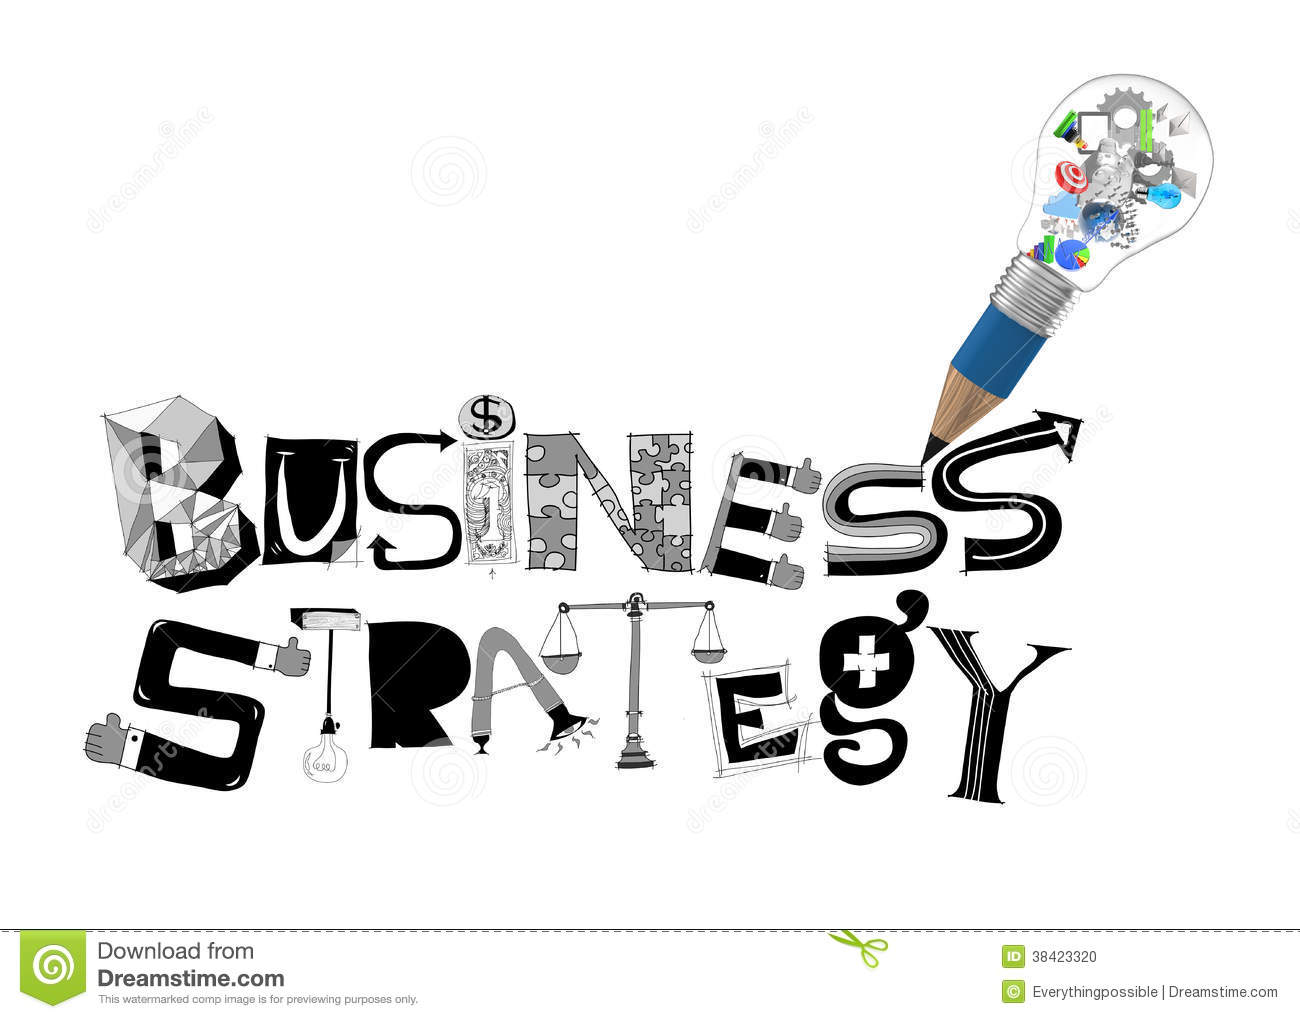 Stock Photo Pencil Lightbulb 3d Design Word Business Strategy Image38423320 also Good Vs Great Seo  pany together with One Innovation Through Knowledge Transfer Ppt Slides together with Chart Picker as well My Favorite Tipping Point Quotes. on marketing diagram